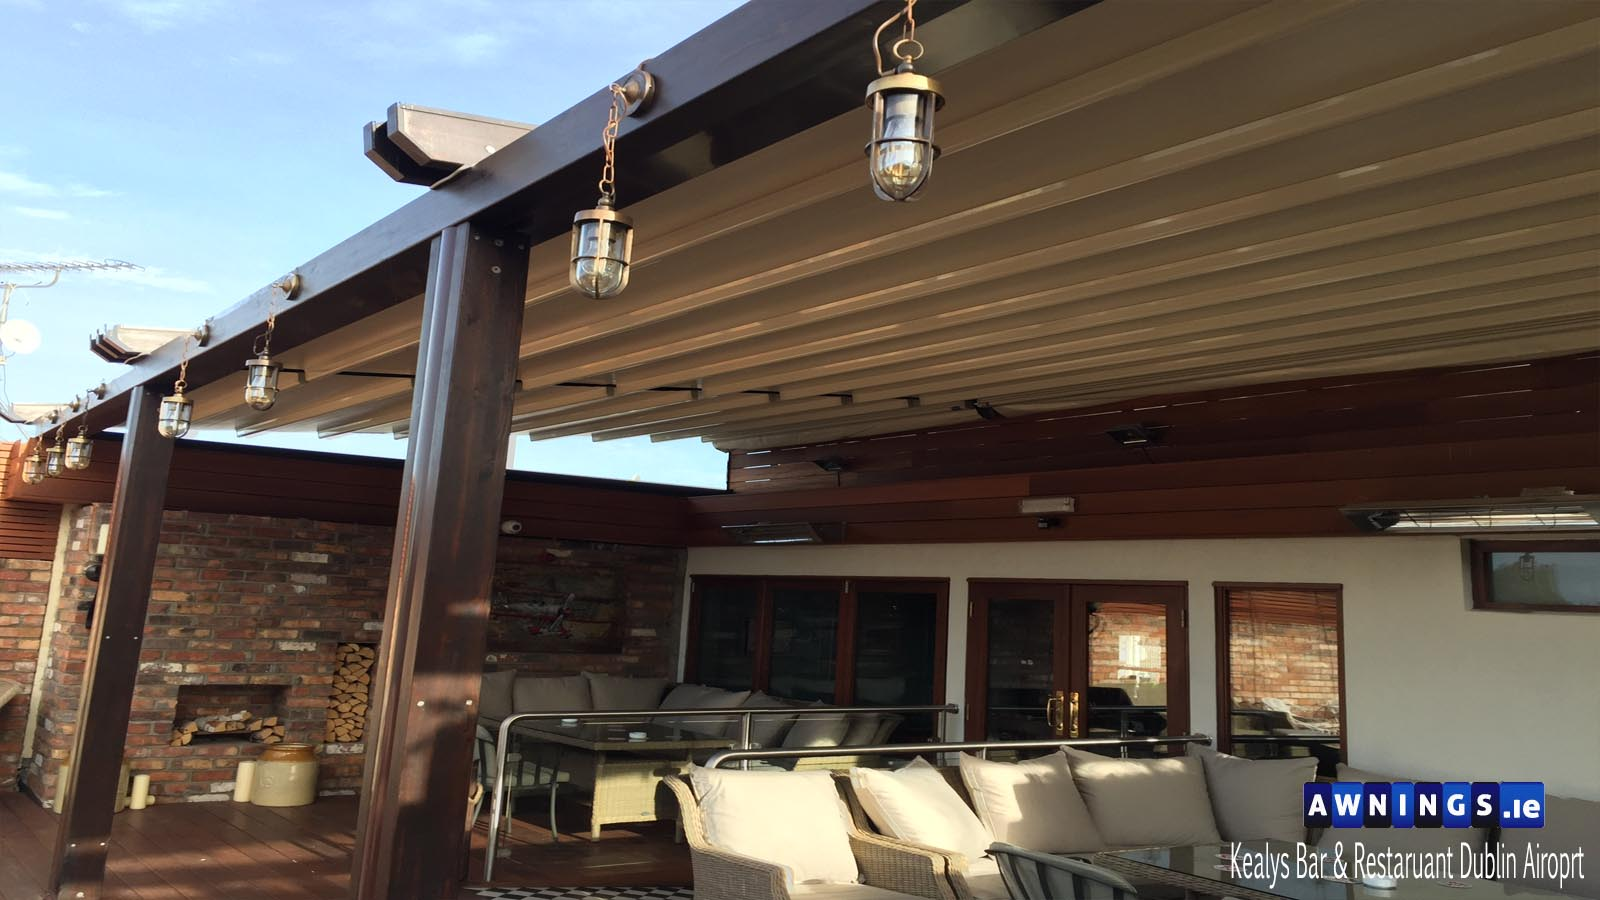 awnings ireland image of Commercial Retractable All Year Round Roof Awning